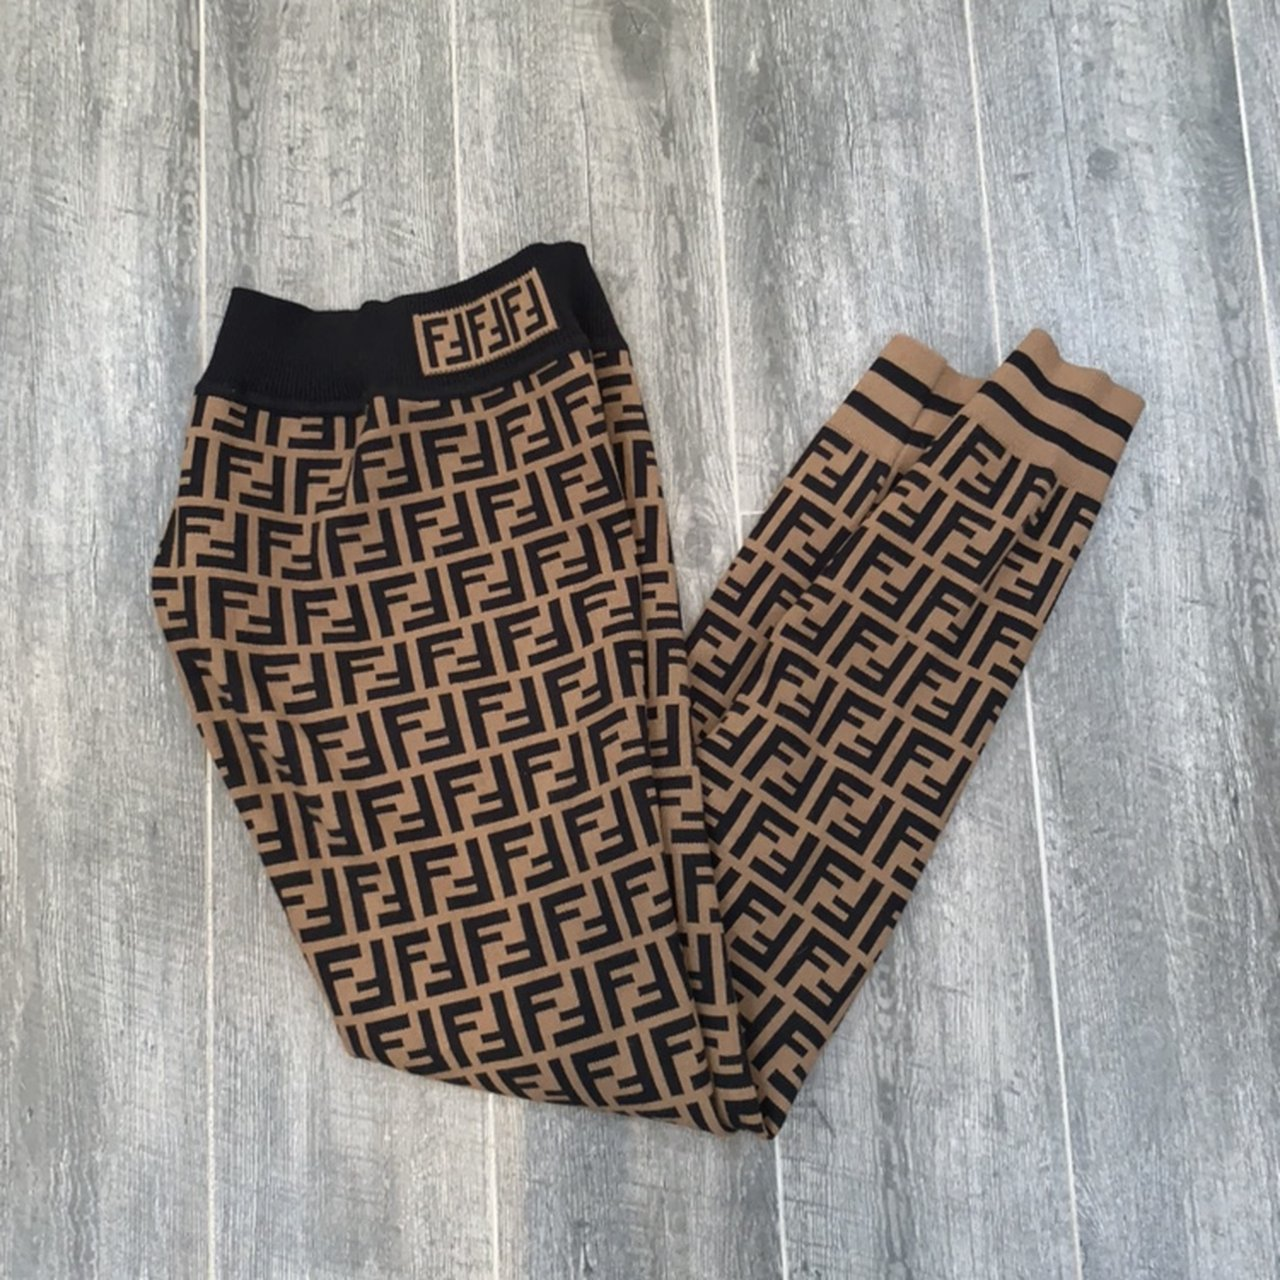 Fendi Knit Leggings Authentic Size 36 0 4 Great Depop